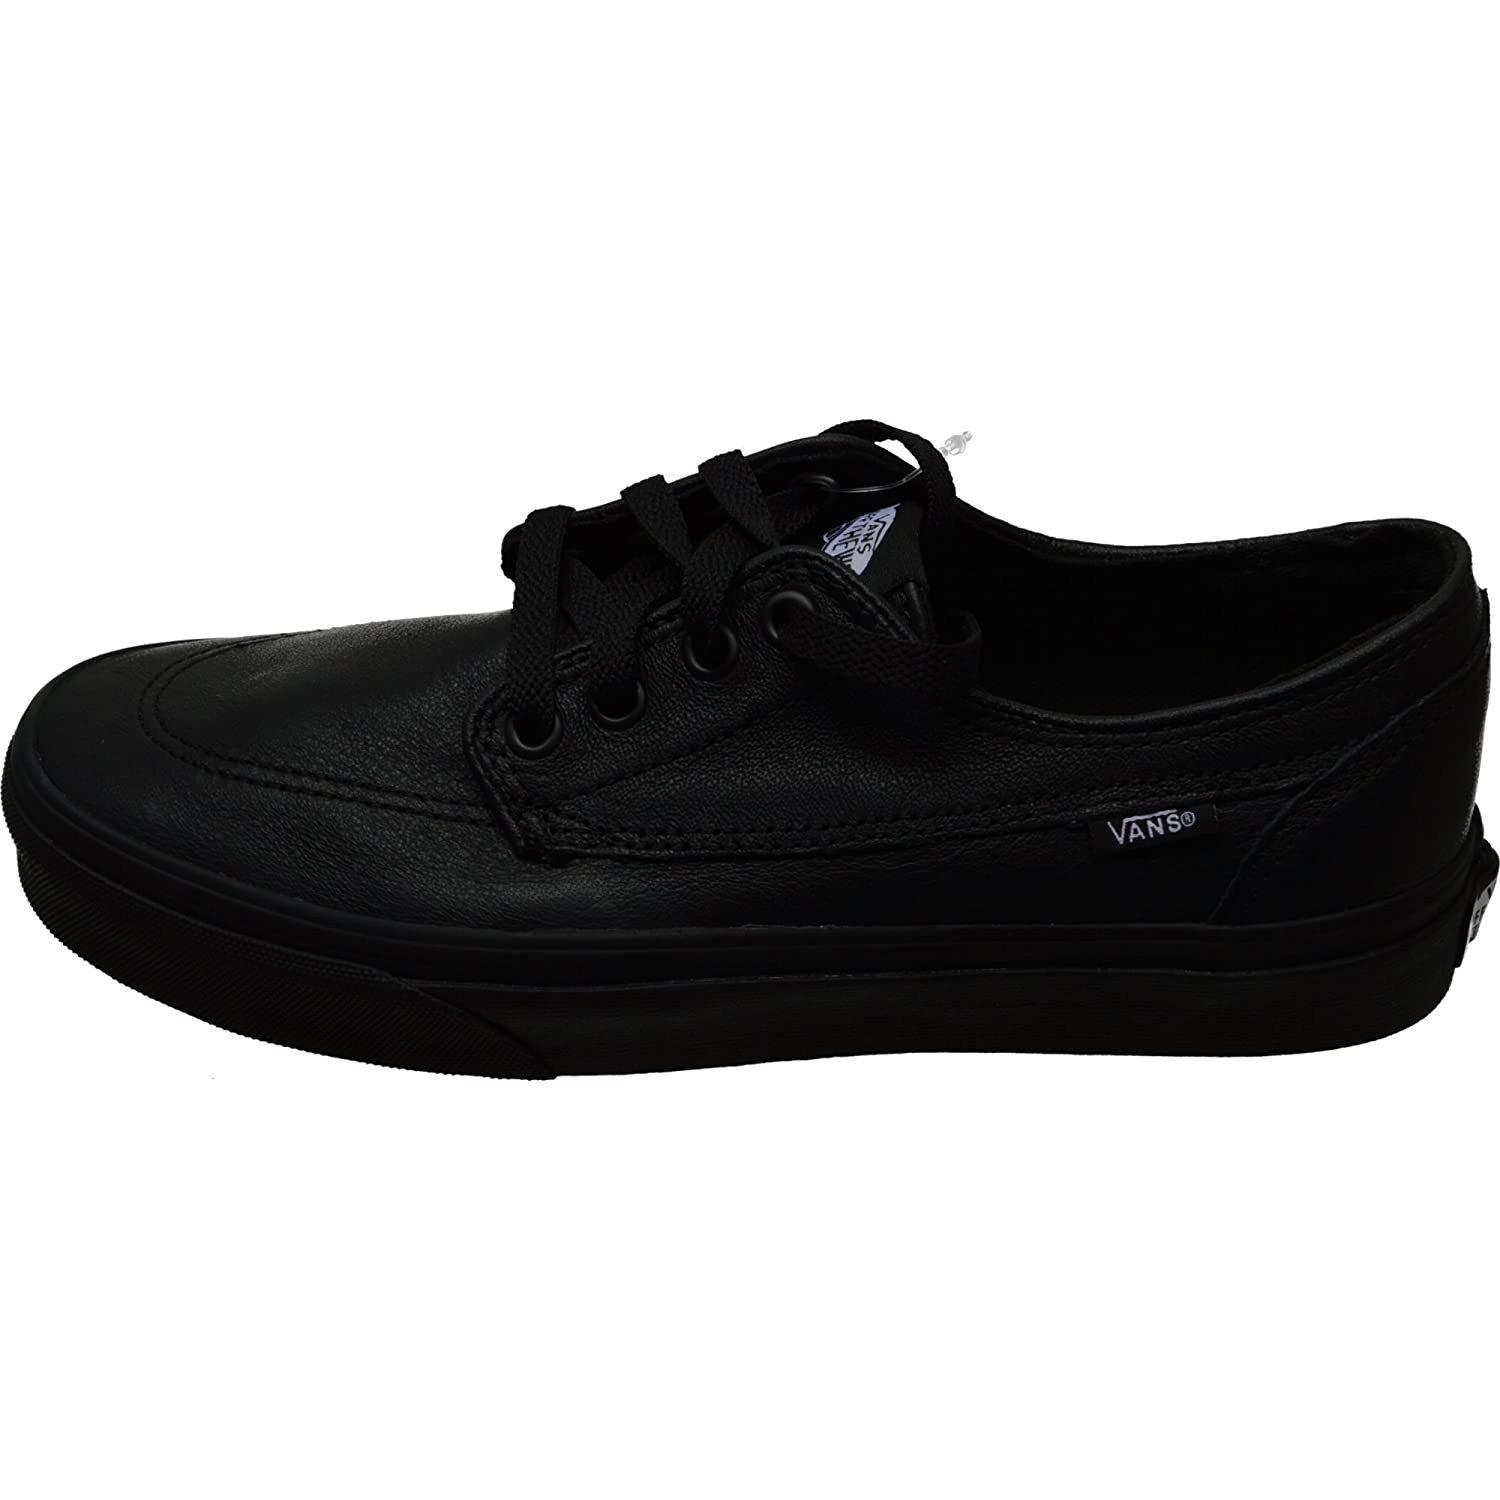 Vans BRIGATA Classics italian leather black black